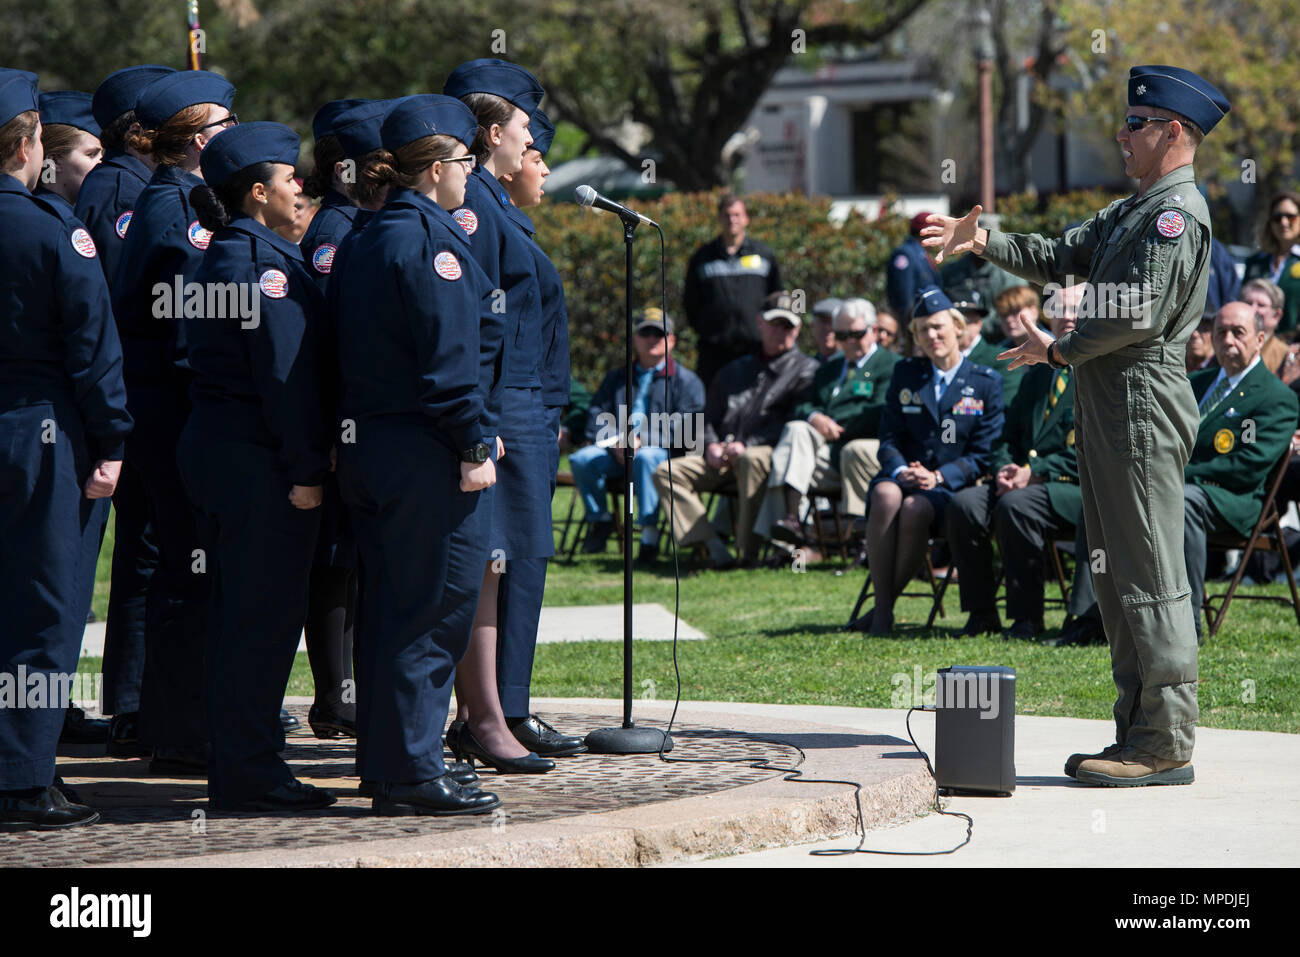 The Floresville High School Air Force Junior ROTC Chorale performs during and event celebrating the anniversary of the first military flight March 2, 2017, at Joint Base San Antonio-Fort Sam Houston, Texas. On March 2, 1910, then-Army Lt. Benjamin Foulois became the first person to make a military flight, from a military facility, in a government owned plane flown by a military-trained pilot. (U.S. Air Force photo by Senior Airman Stormy Archer) - Stock Image